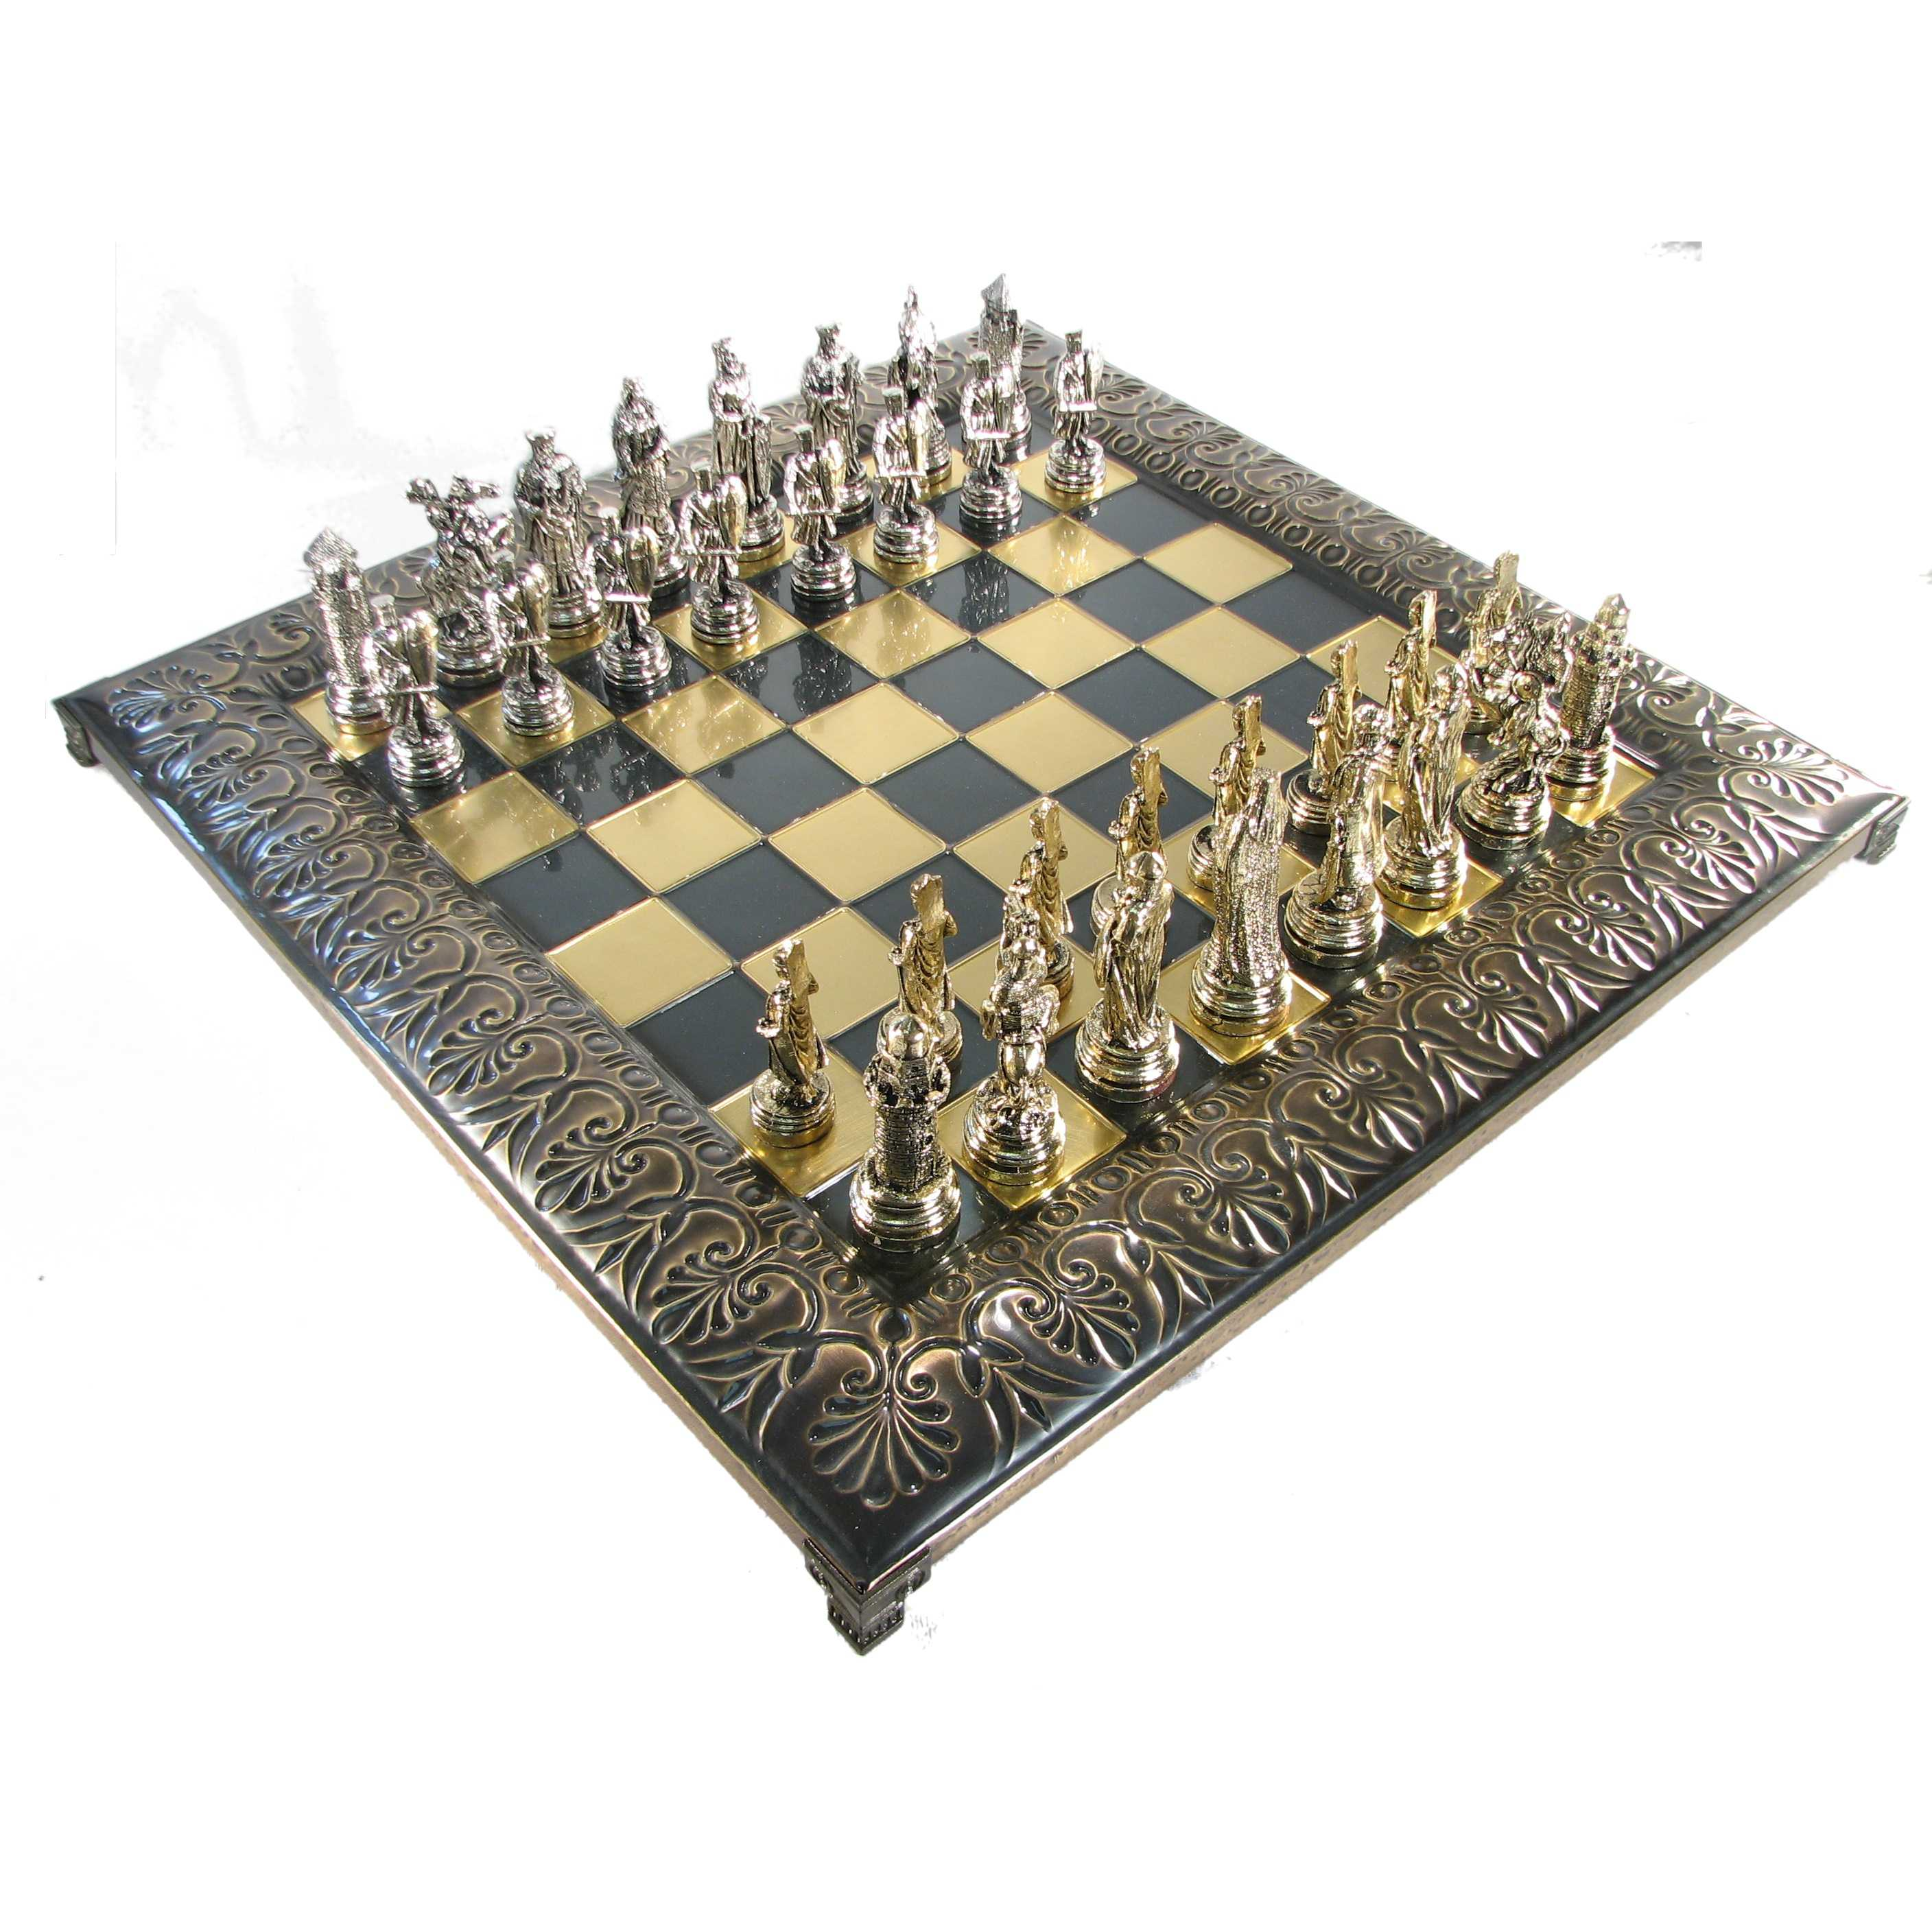 Steel Chess Pieces Metal Chess Board Sets Interior Design And Decorating Ideas